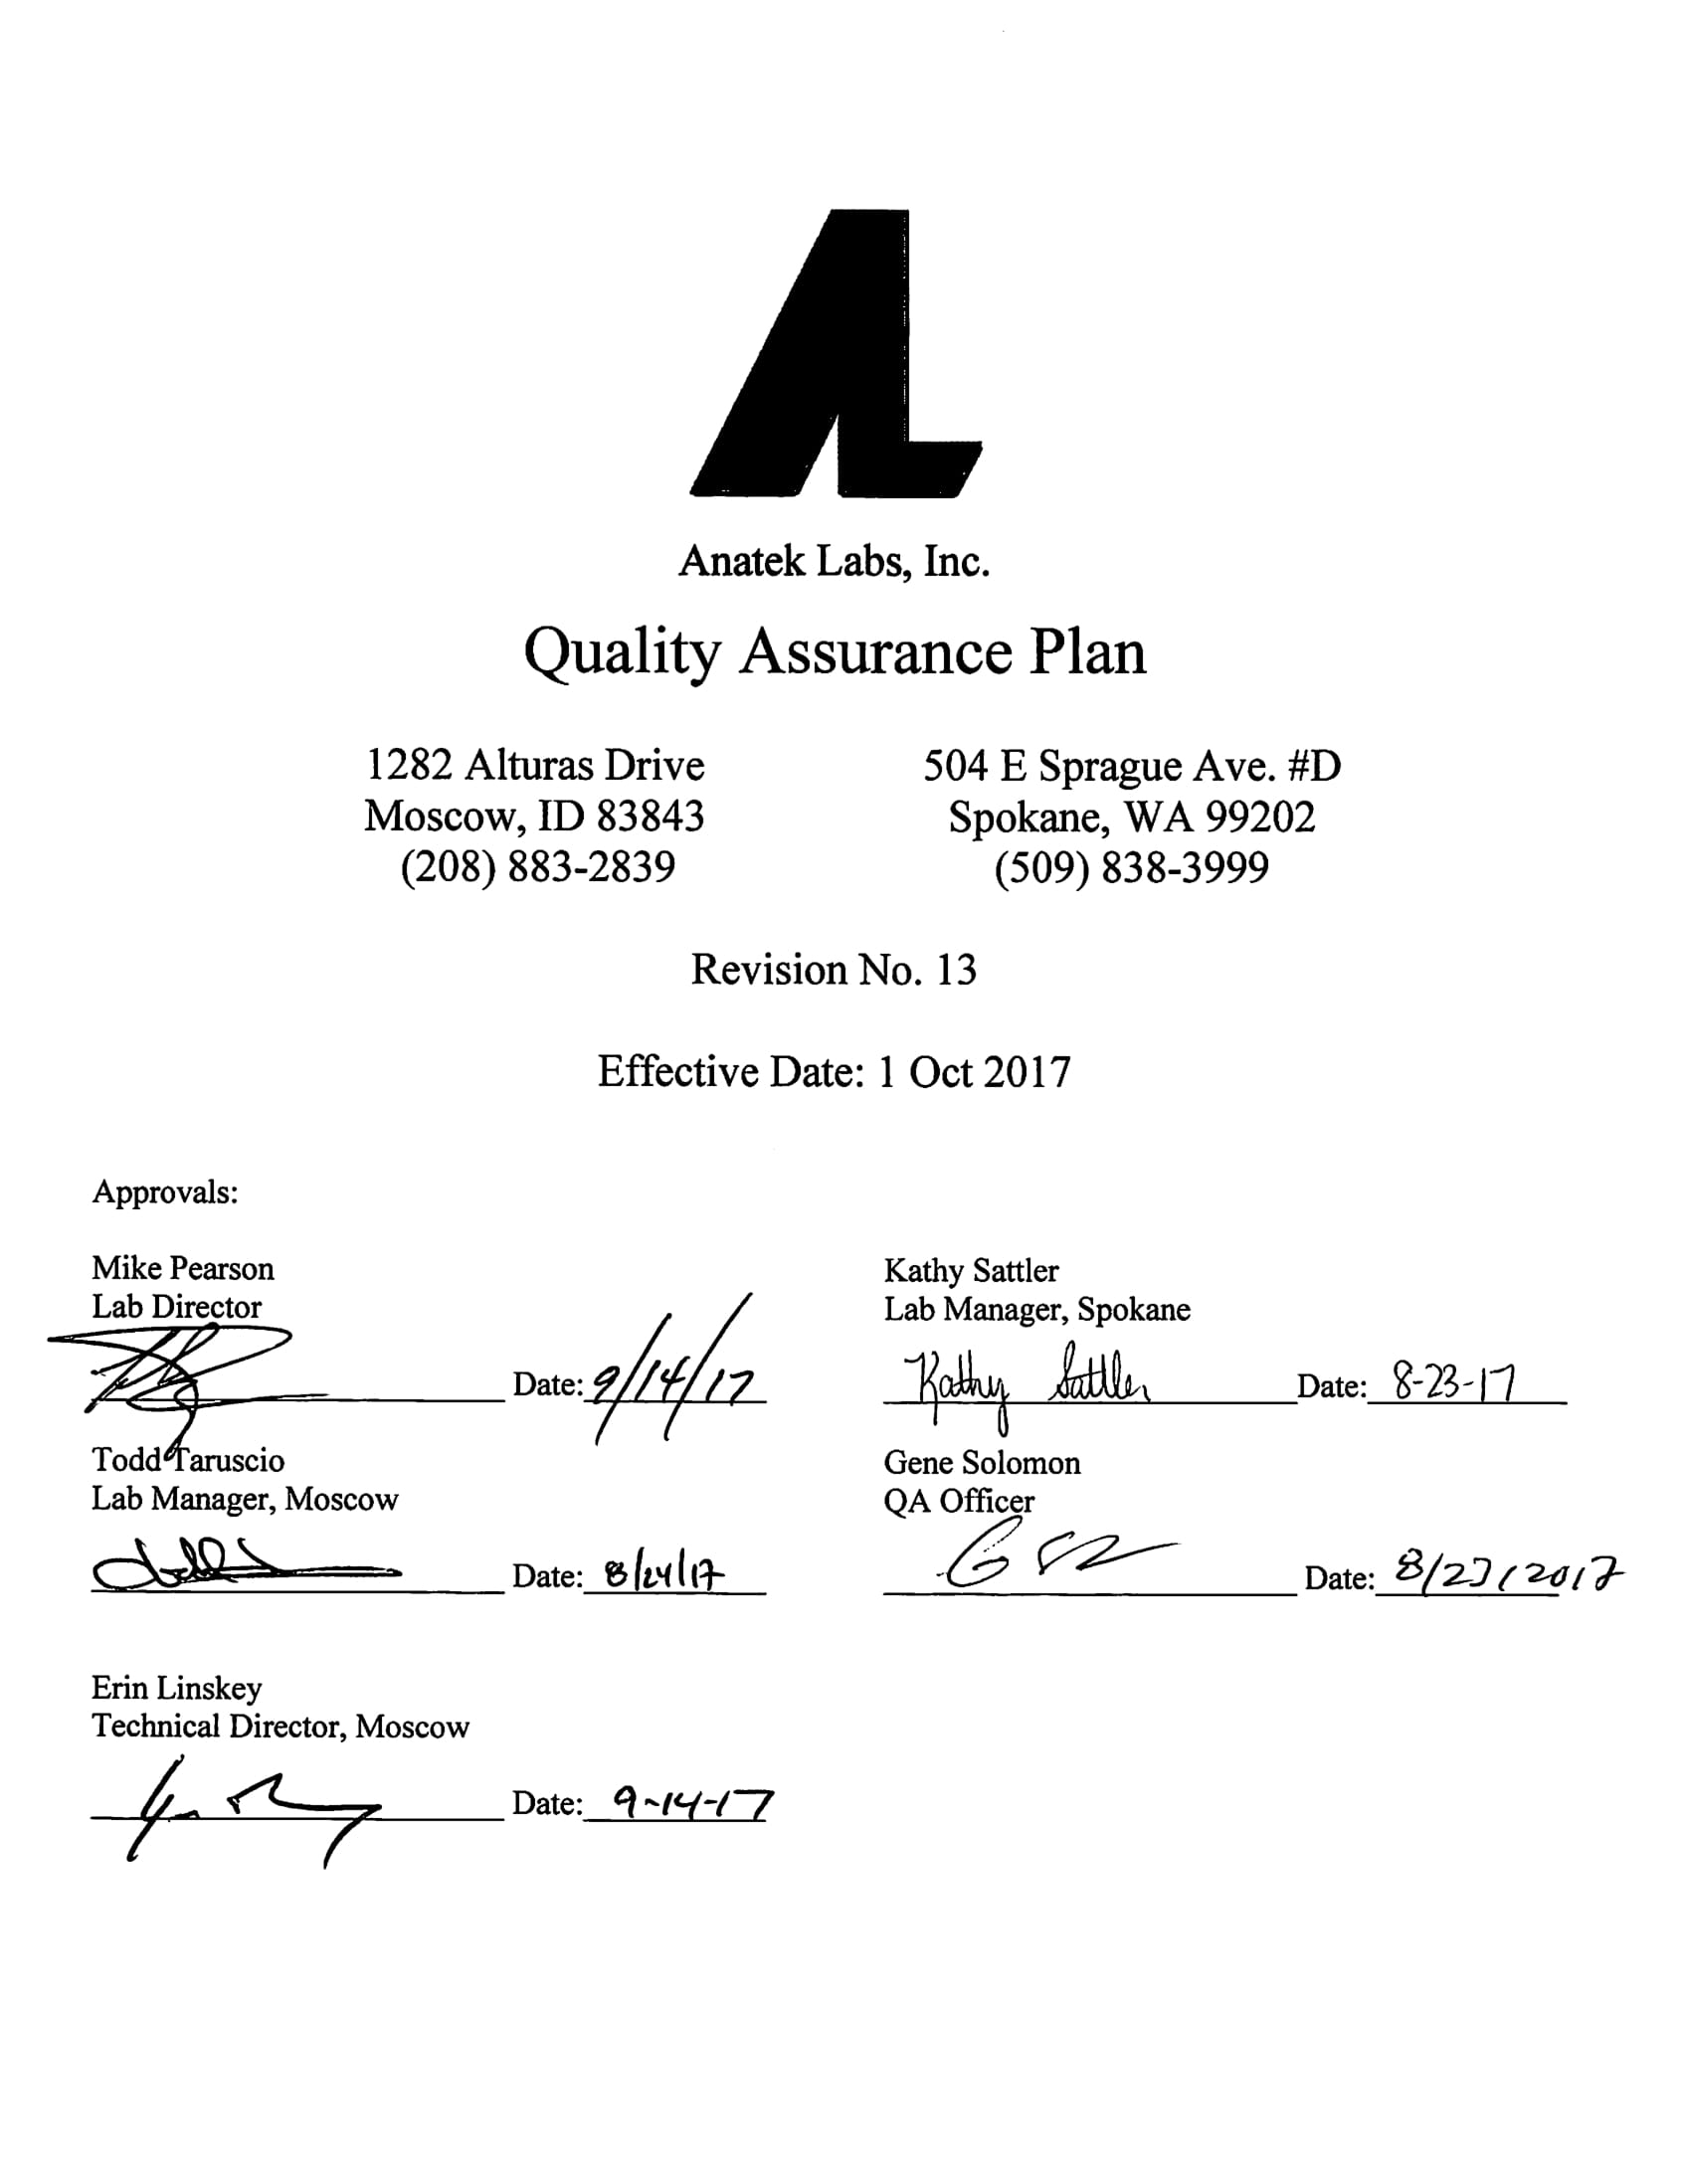 laboratory quality assurance plan example 01